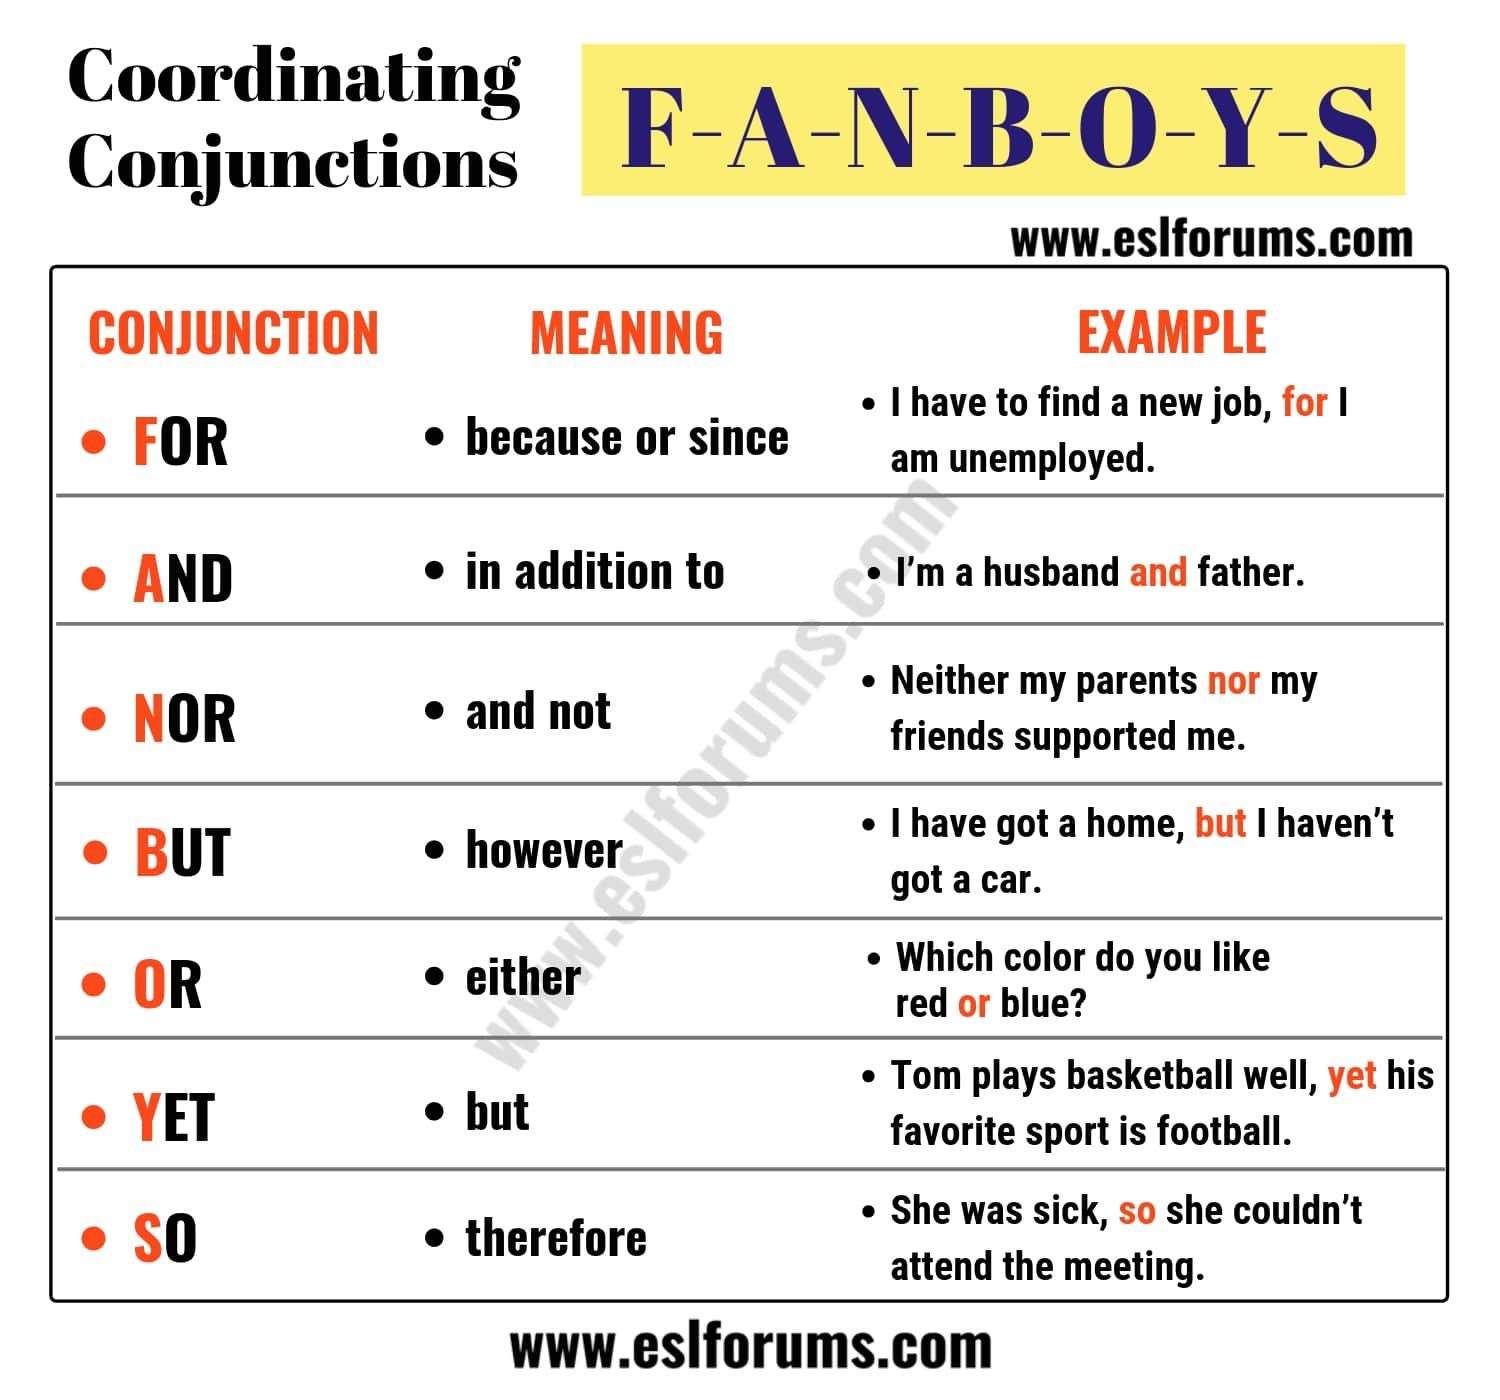 small resolution of FANBOYS: 7 Important Coordinating Conjunctions - ESL Forums   English  vocabulary words